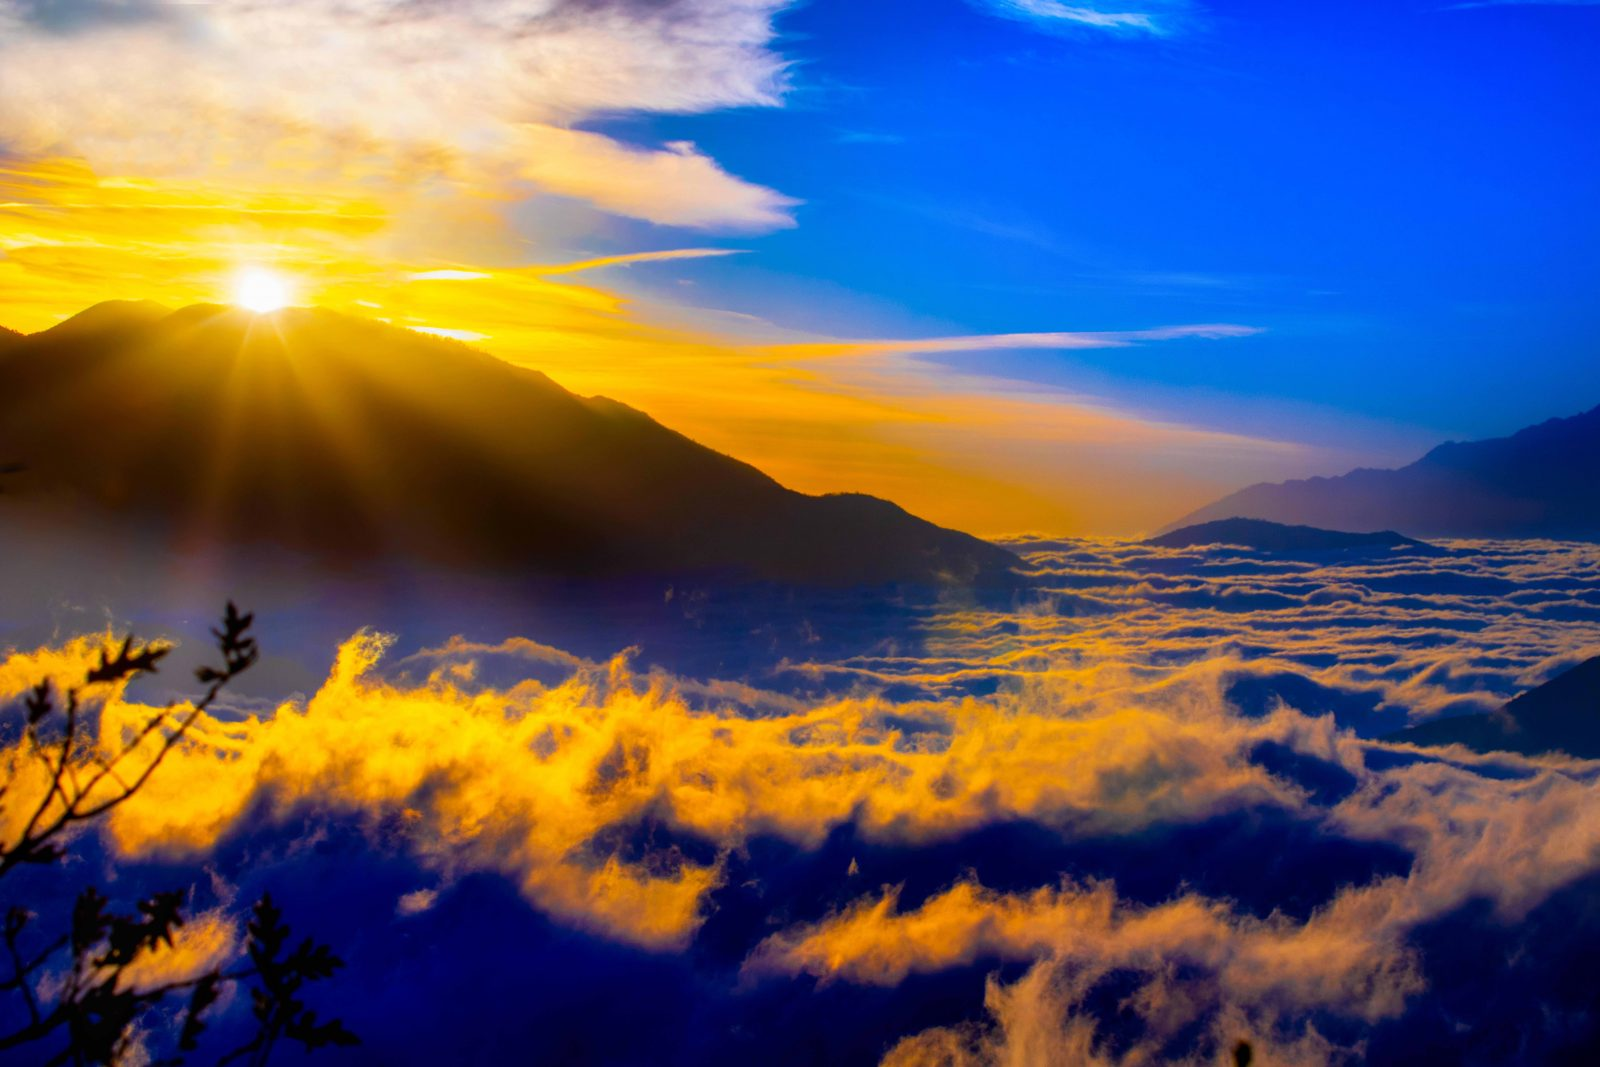 Morning Glory at the Rim of the World